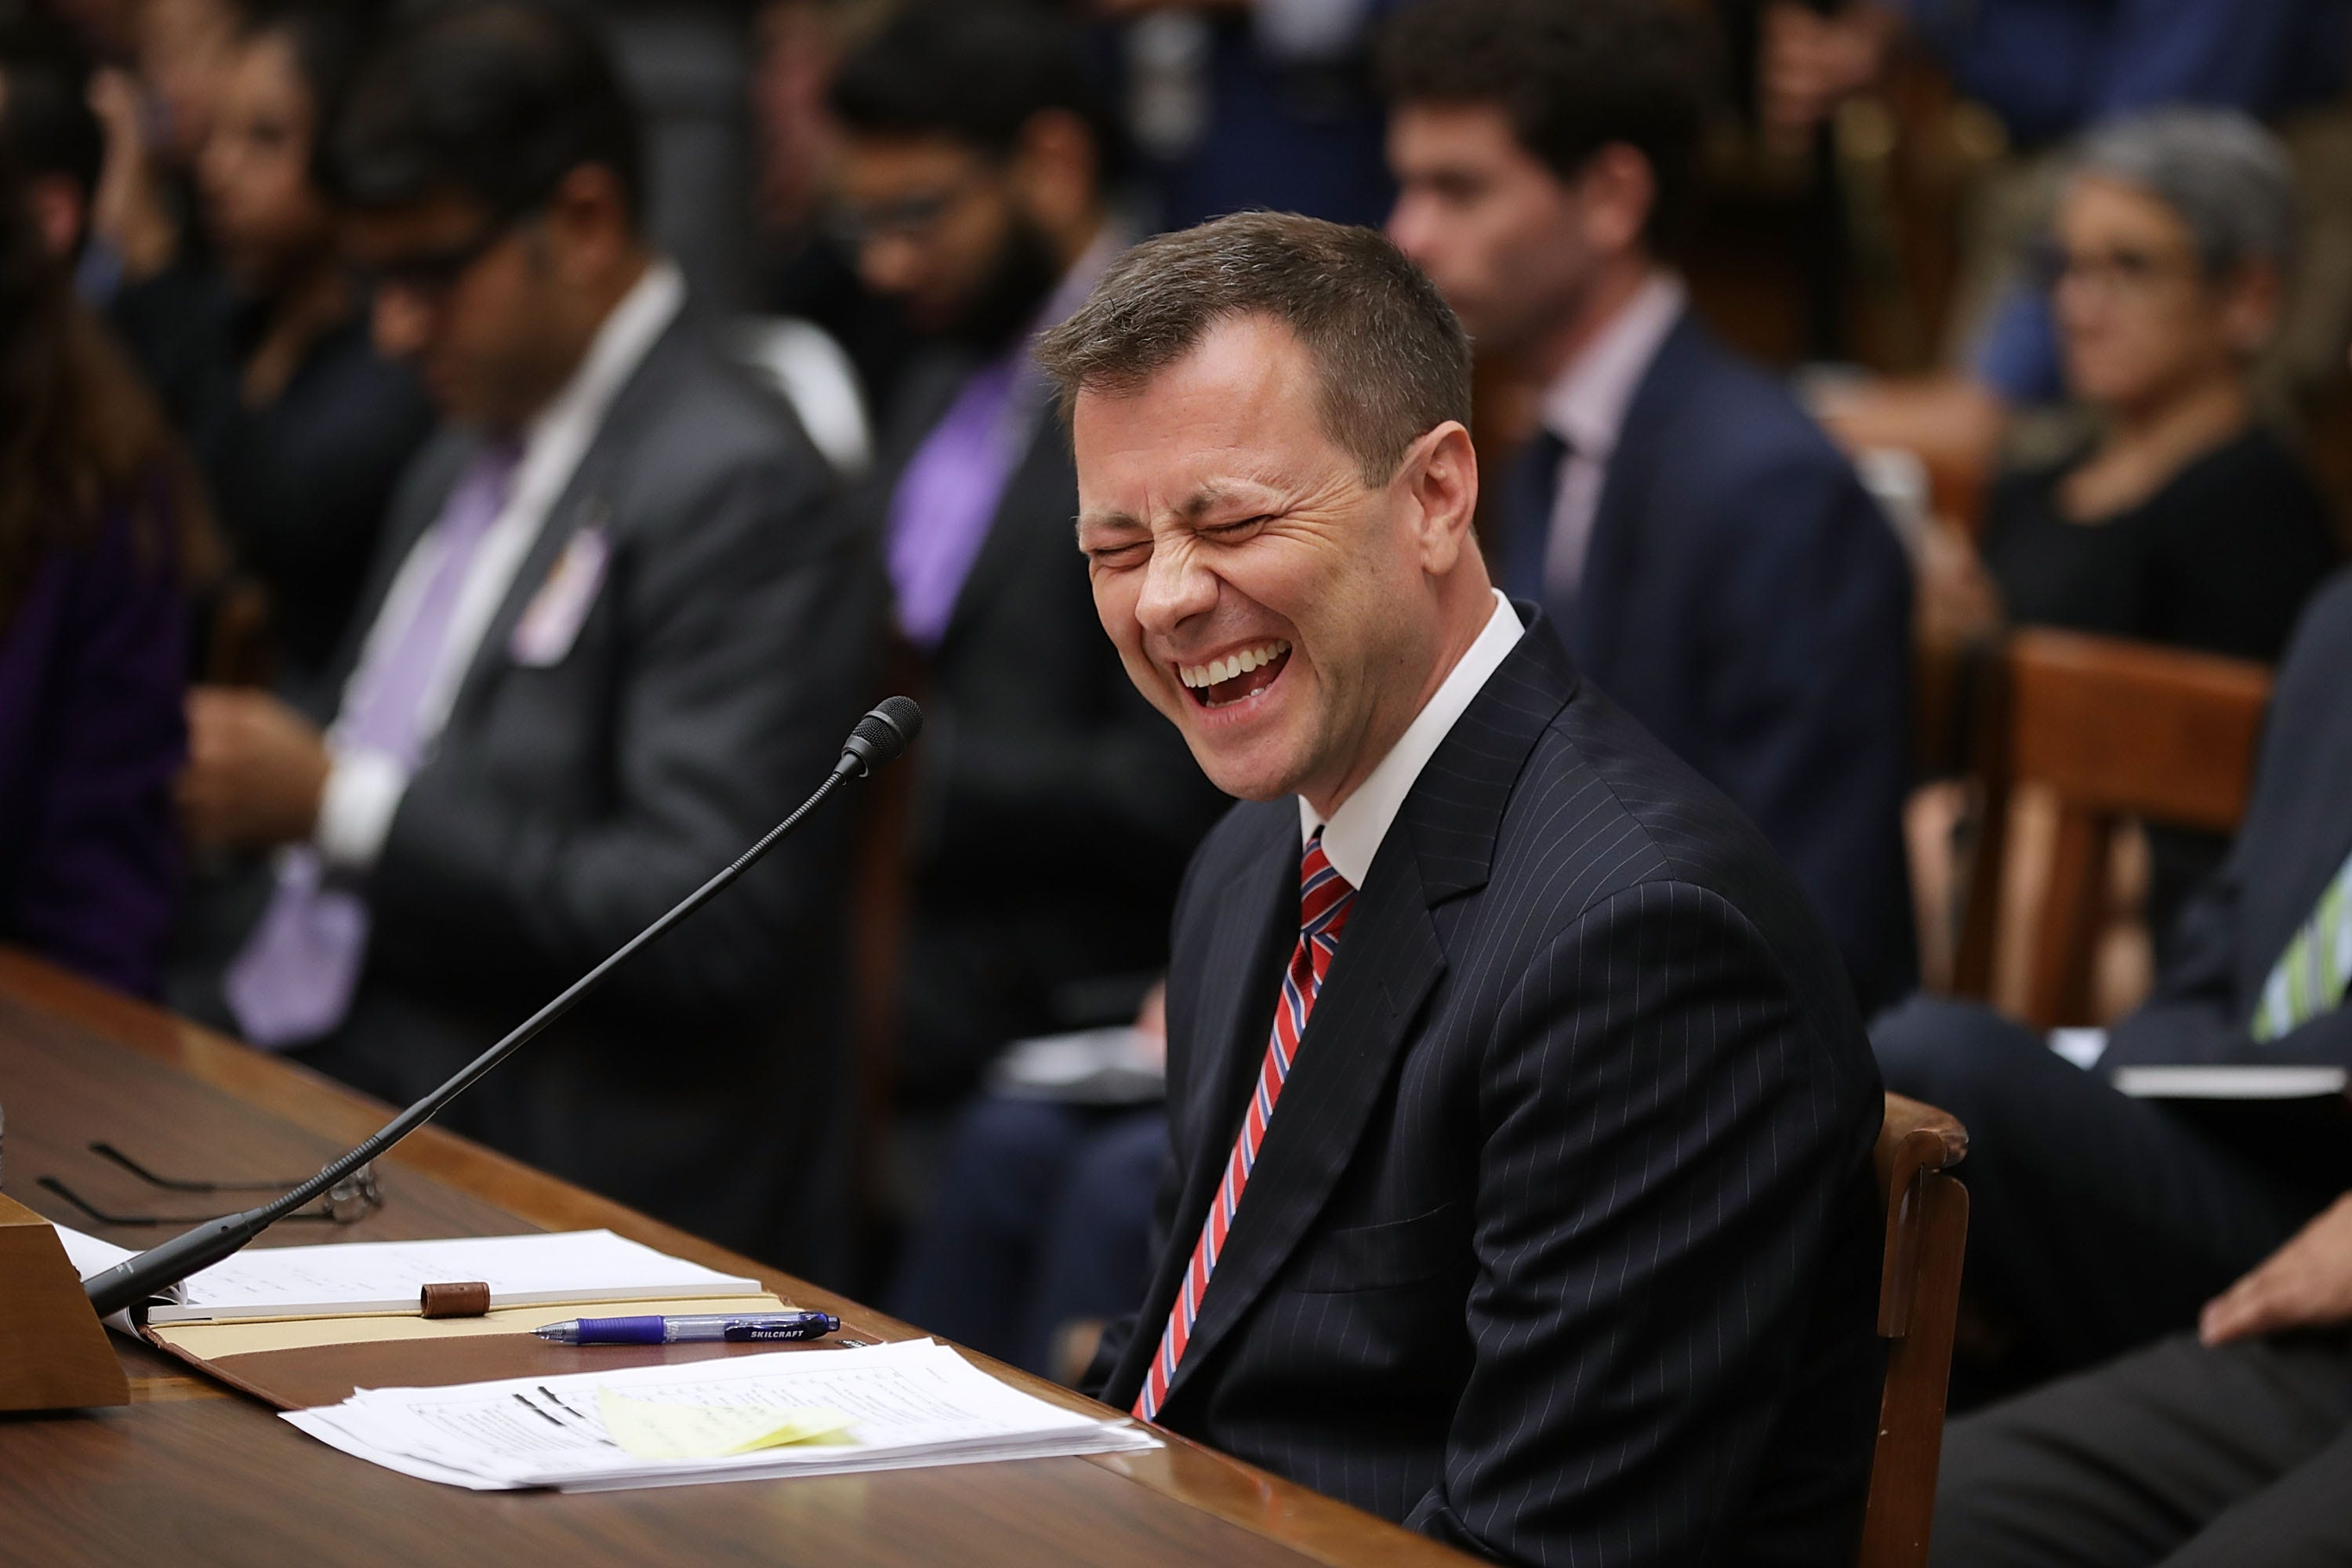 GoFundMe page for fired FBI agent Peter Strzok raises $130,000 in 10 hours